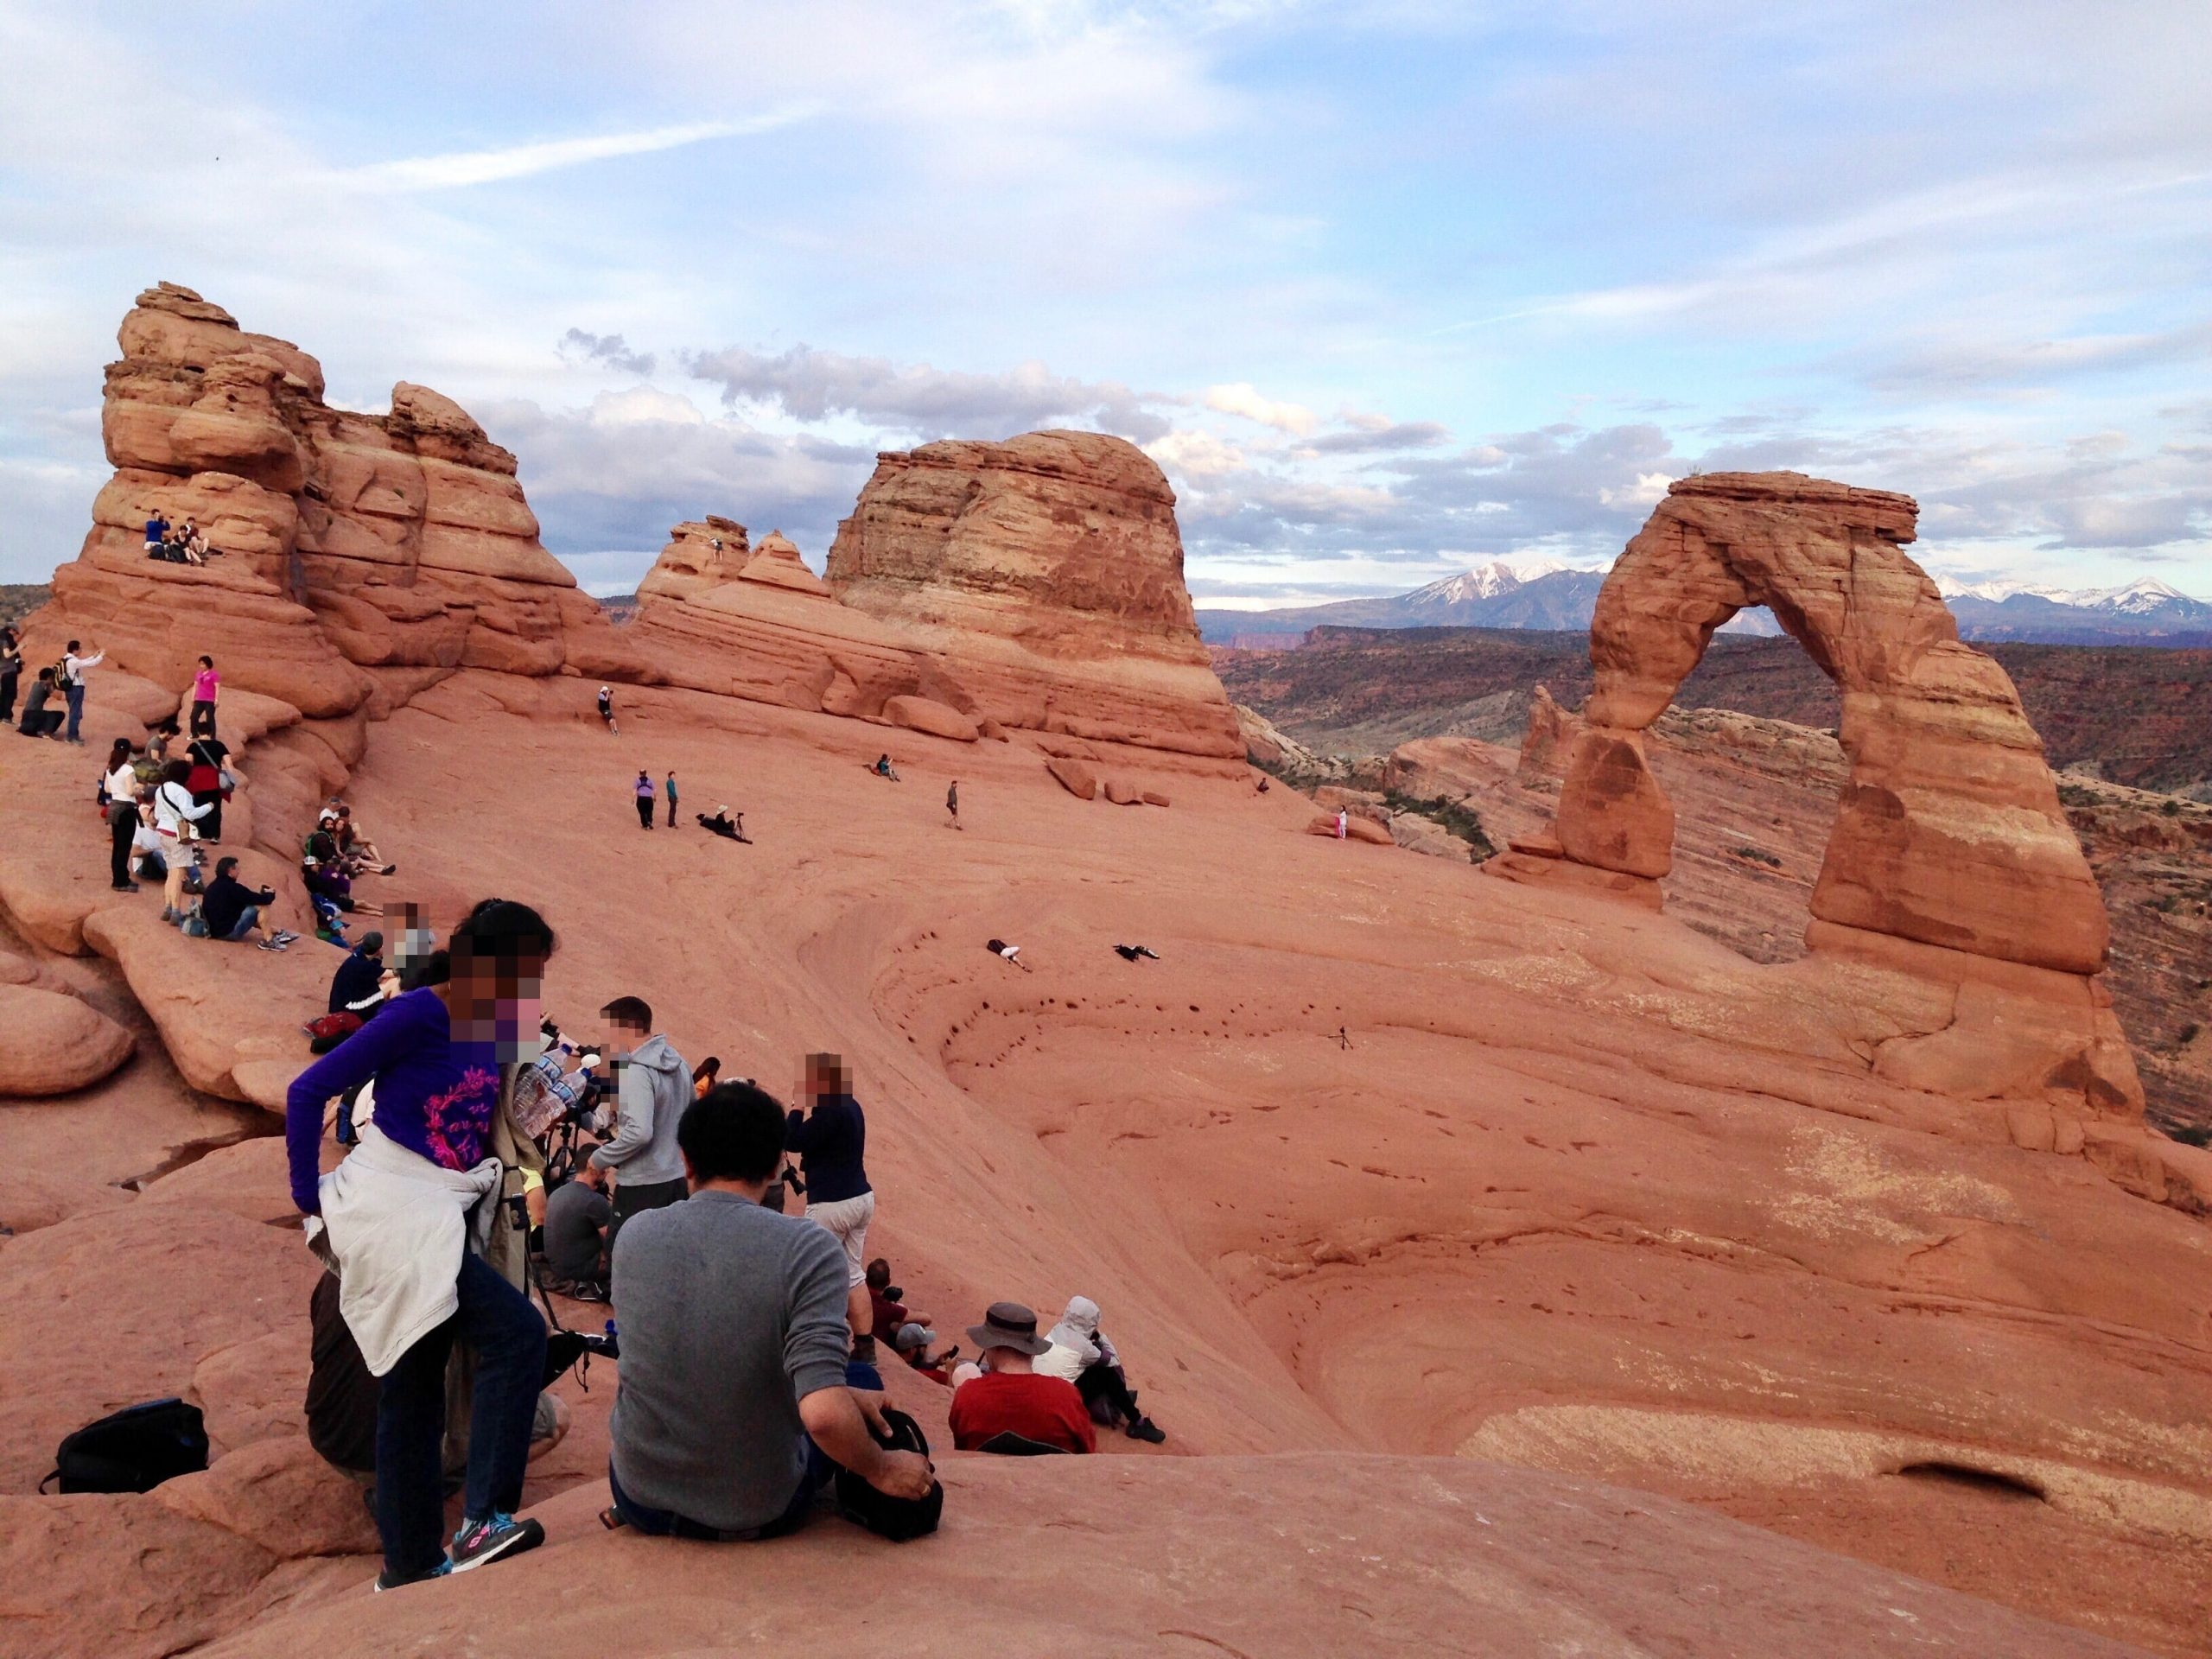 Crowds at Delicate Arch in Arches National Park